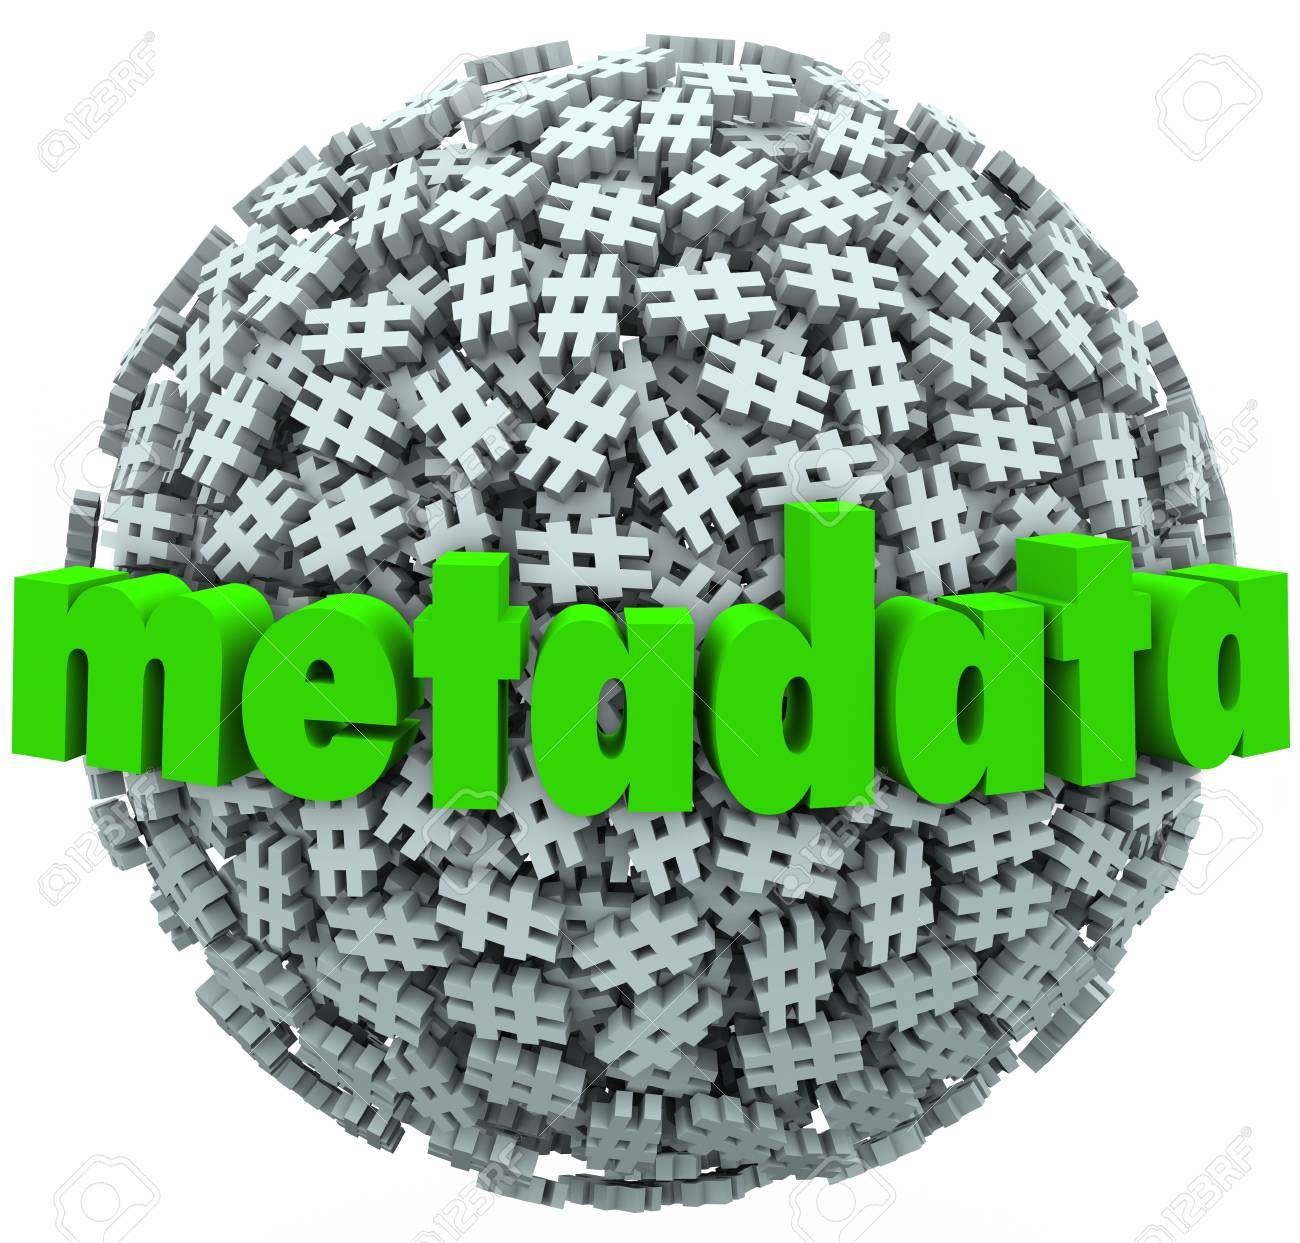 A ball or sphere of hash tags or number pound signs and the word Metadata to illustrate posts and data published on websites or social network sites Stock Photo - 20401869